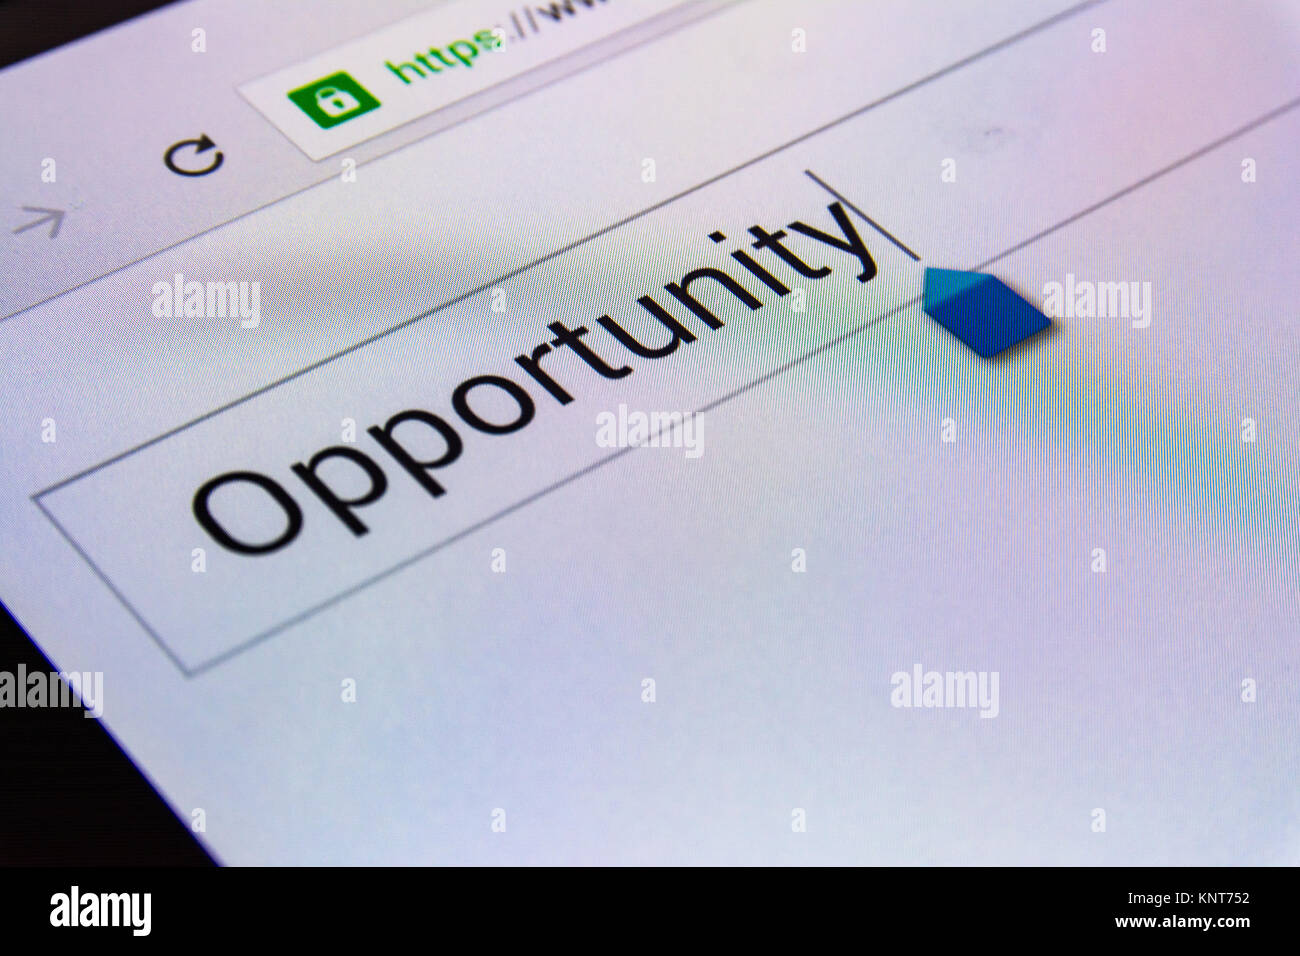 Magnifying Glass Search Box Empty Blank Internet Screen Opportunity - Stock Image